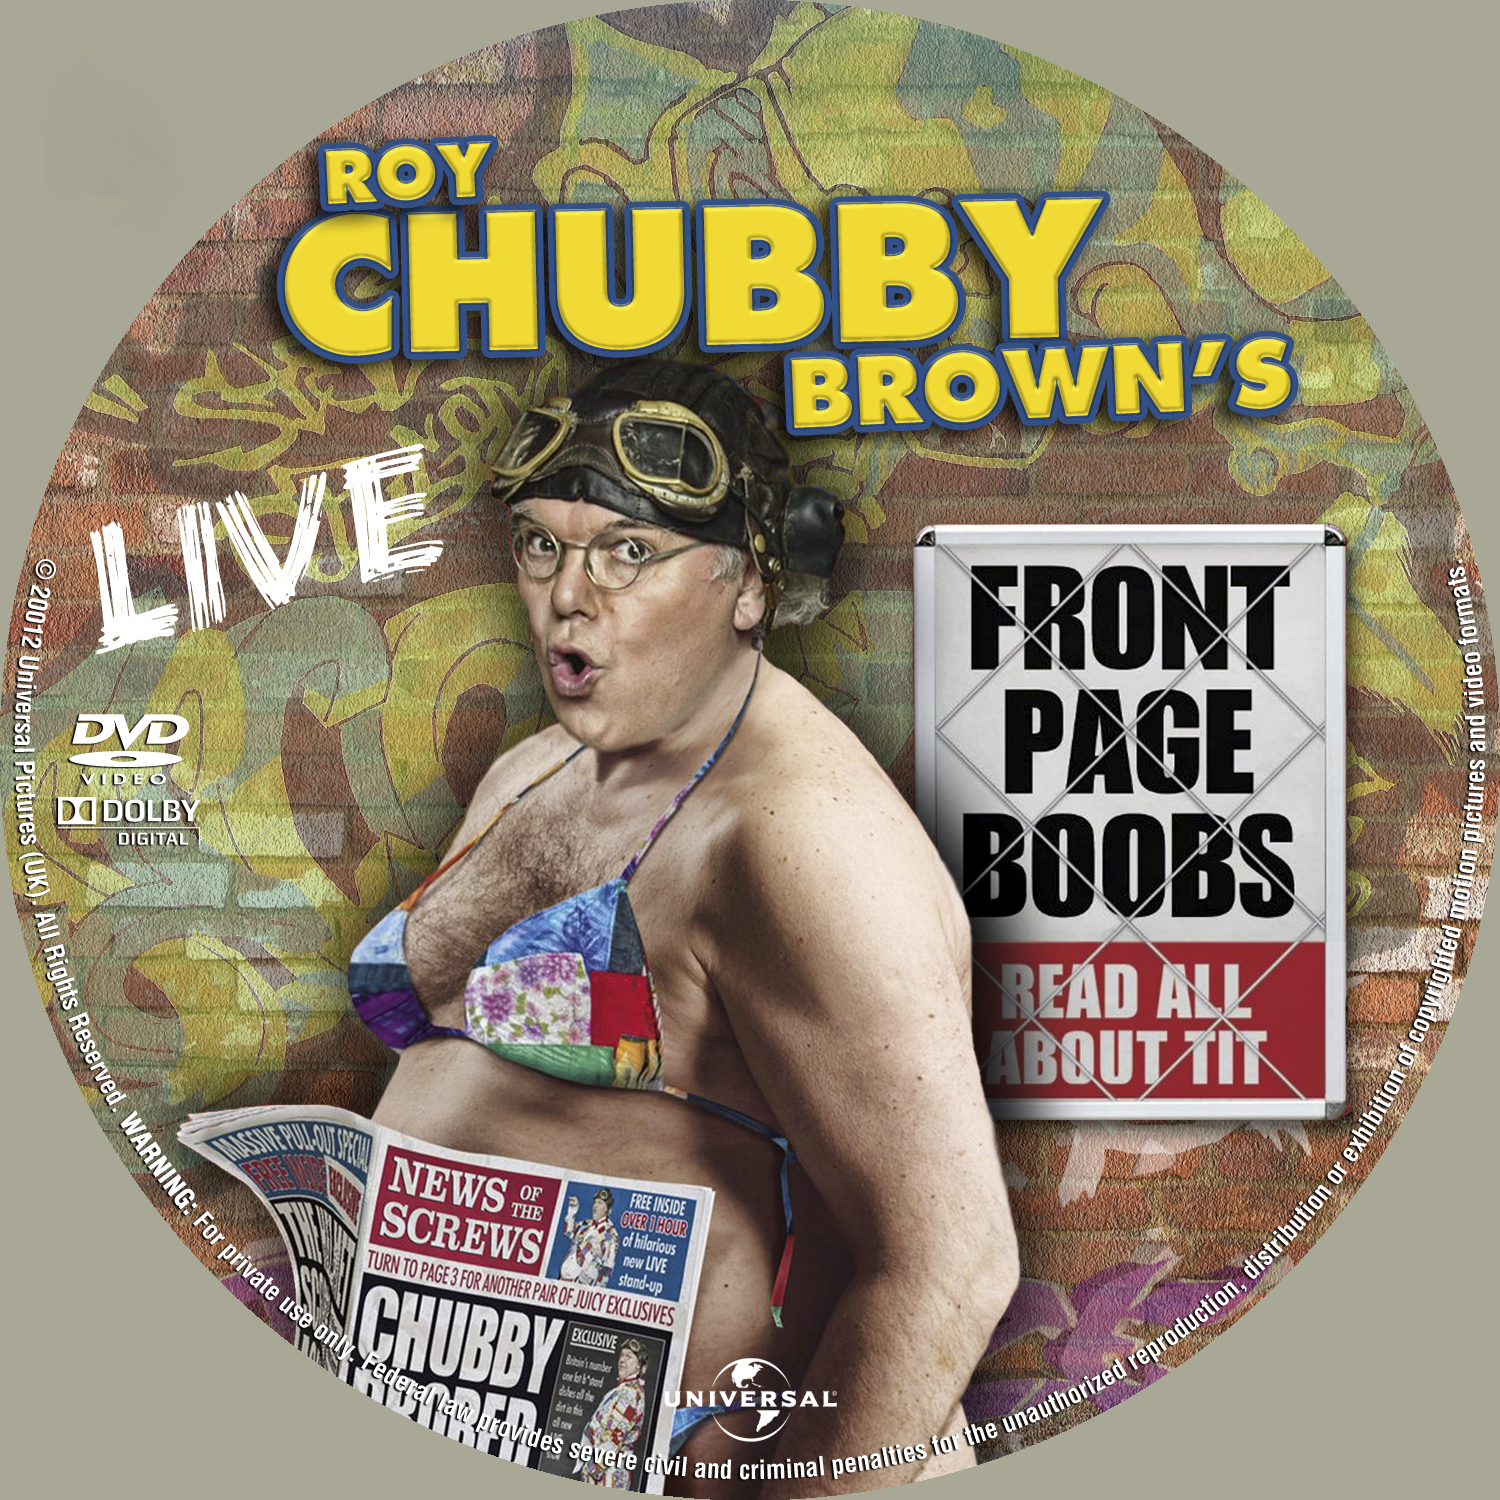 Roy chubby brown cd covers